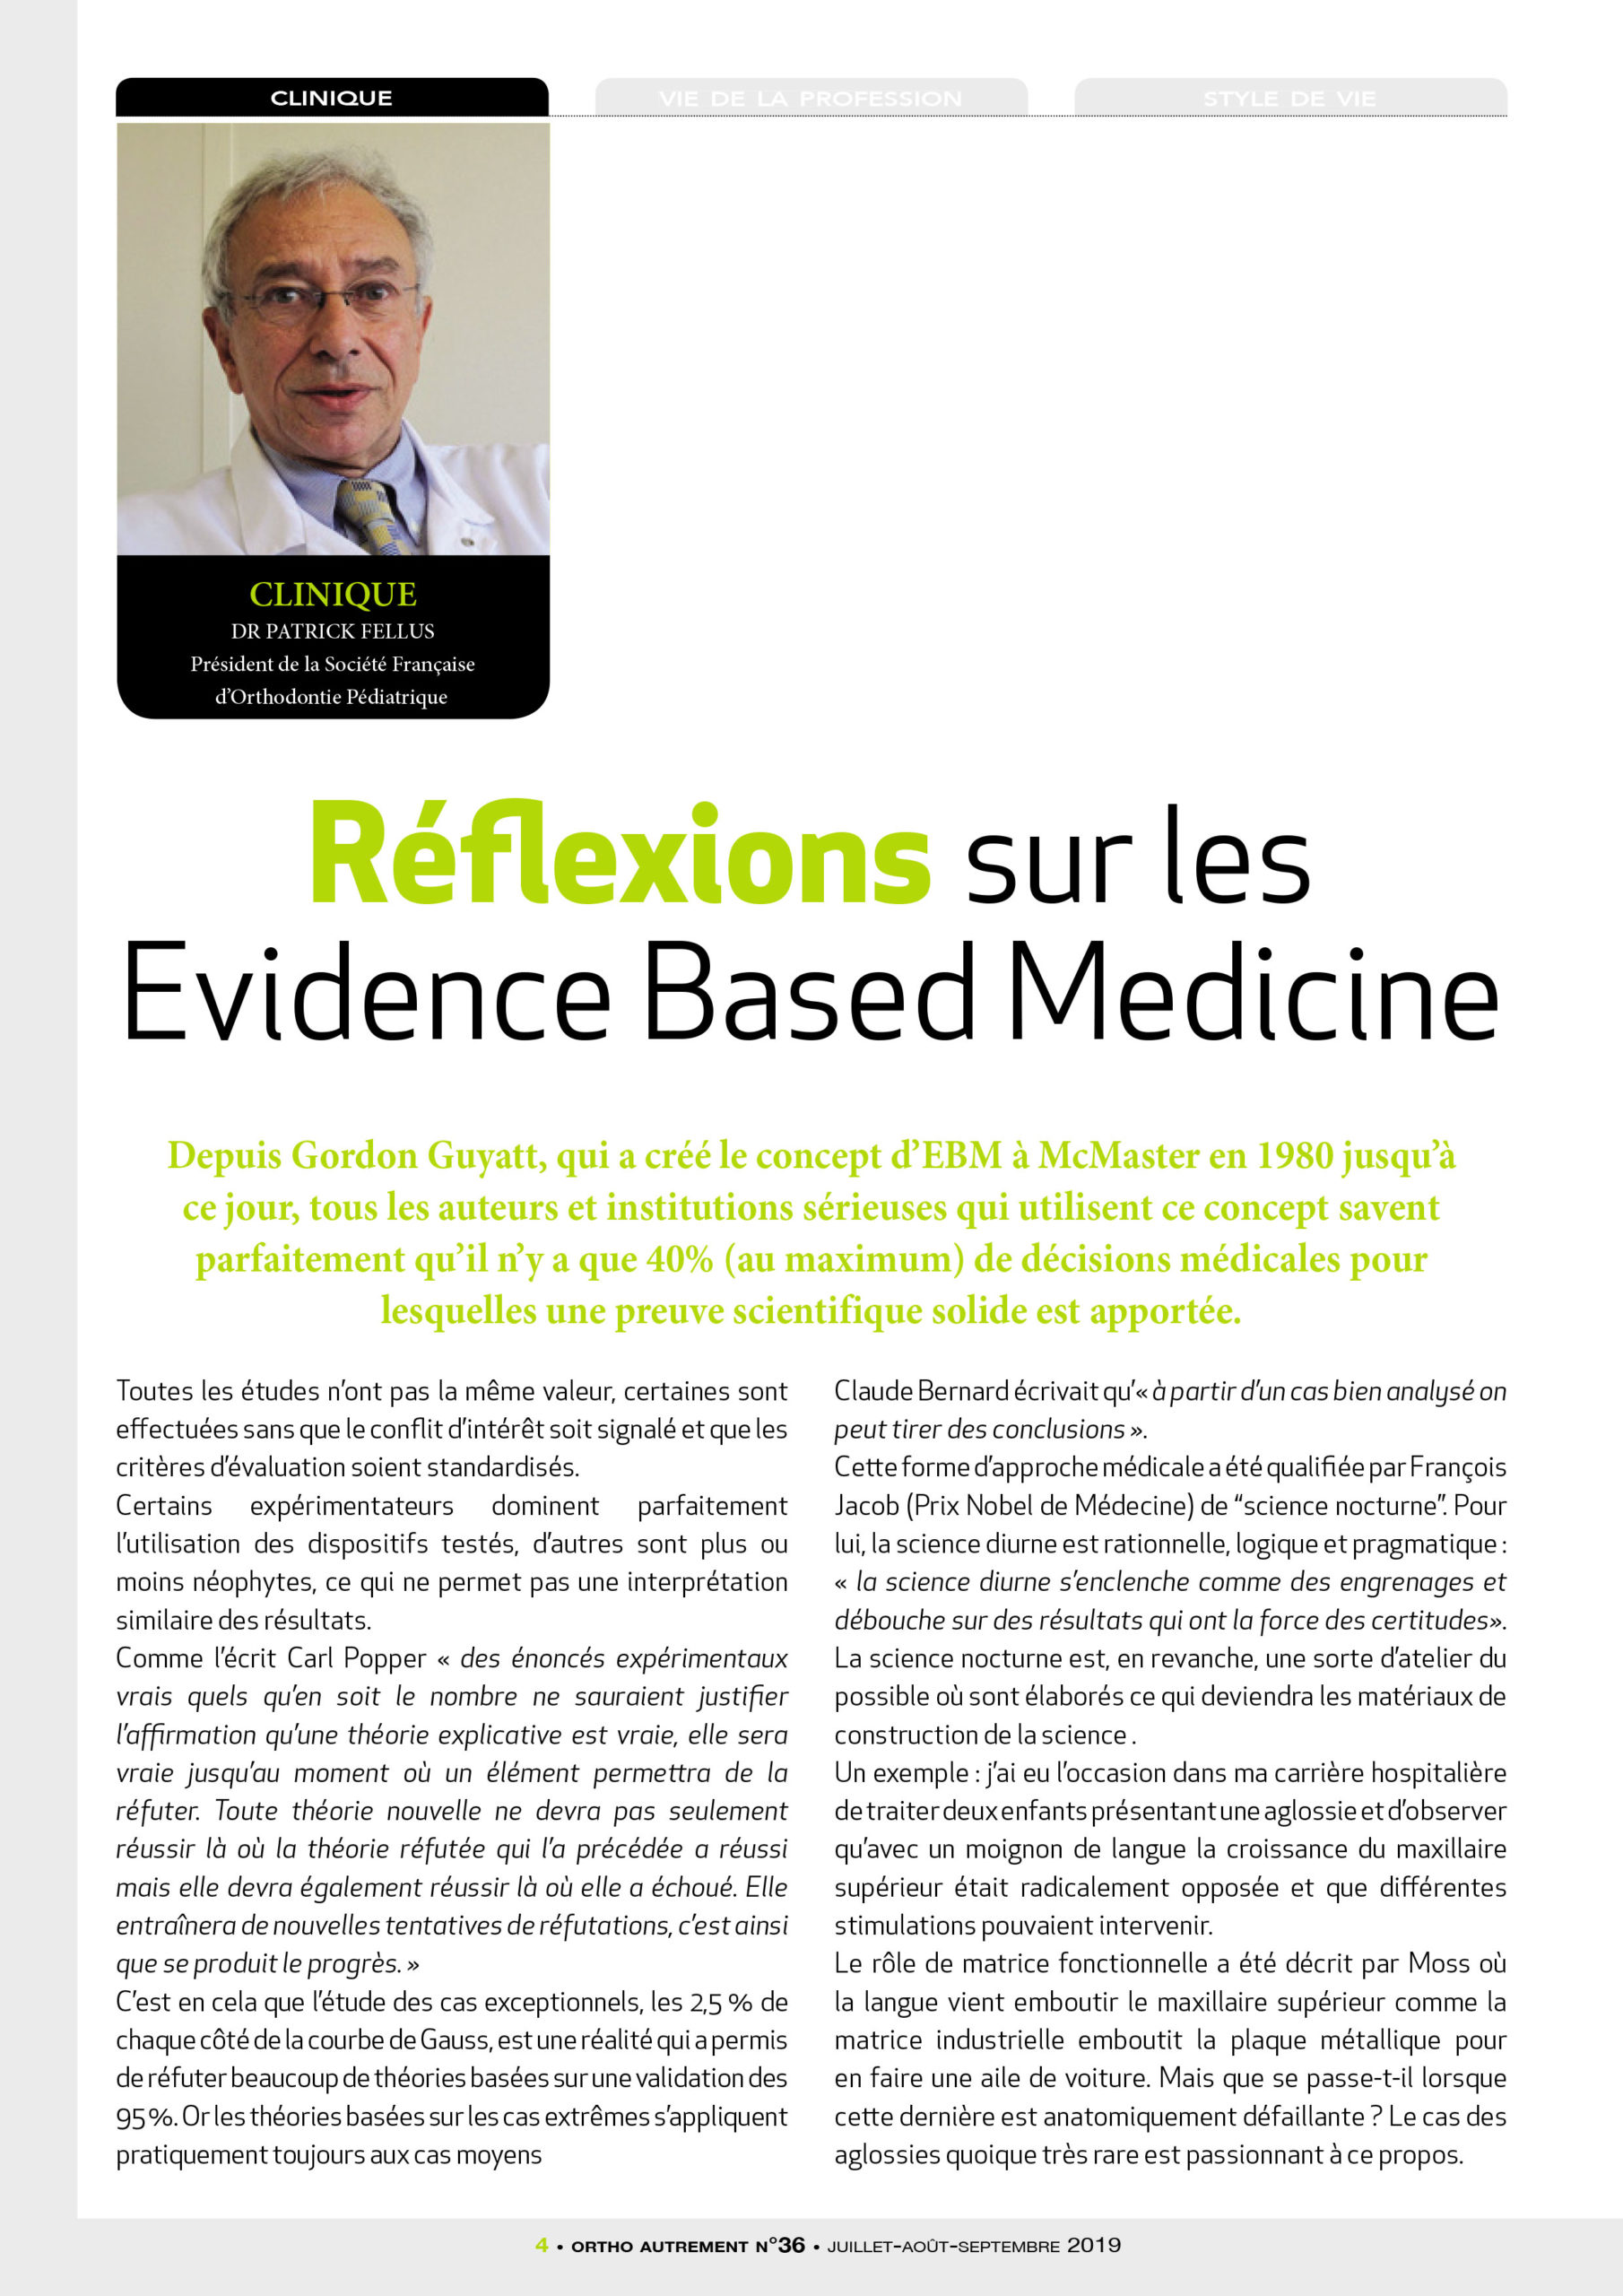 dr fellus article scientifique orthoautrement